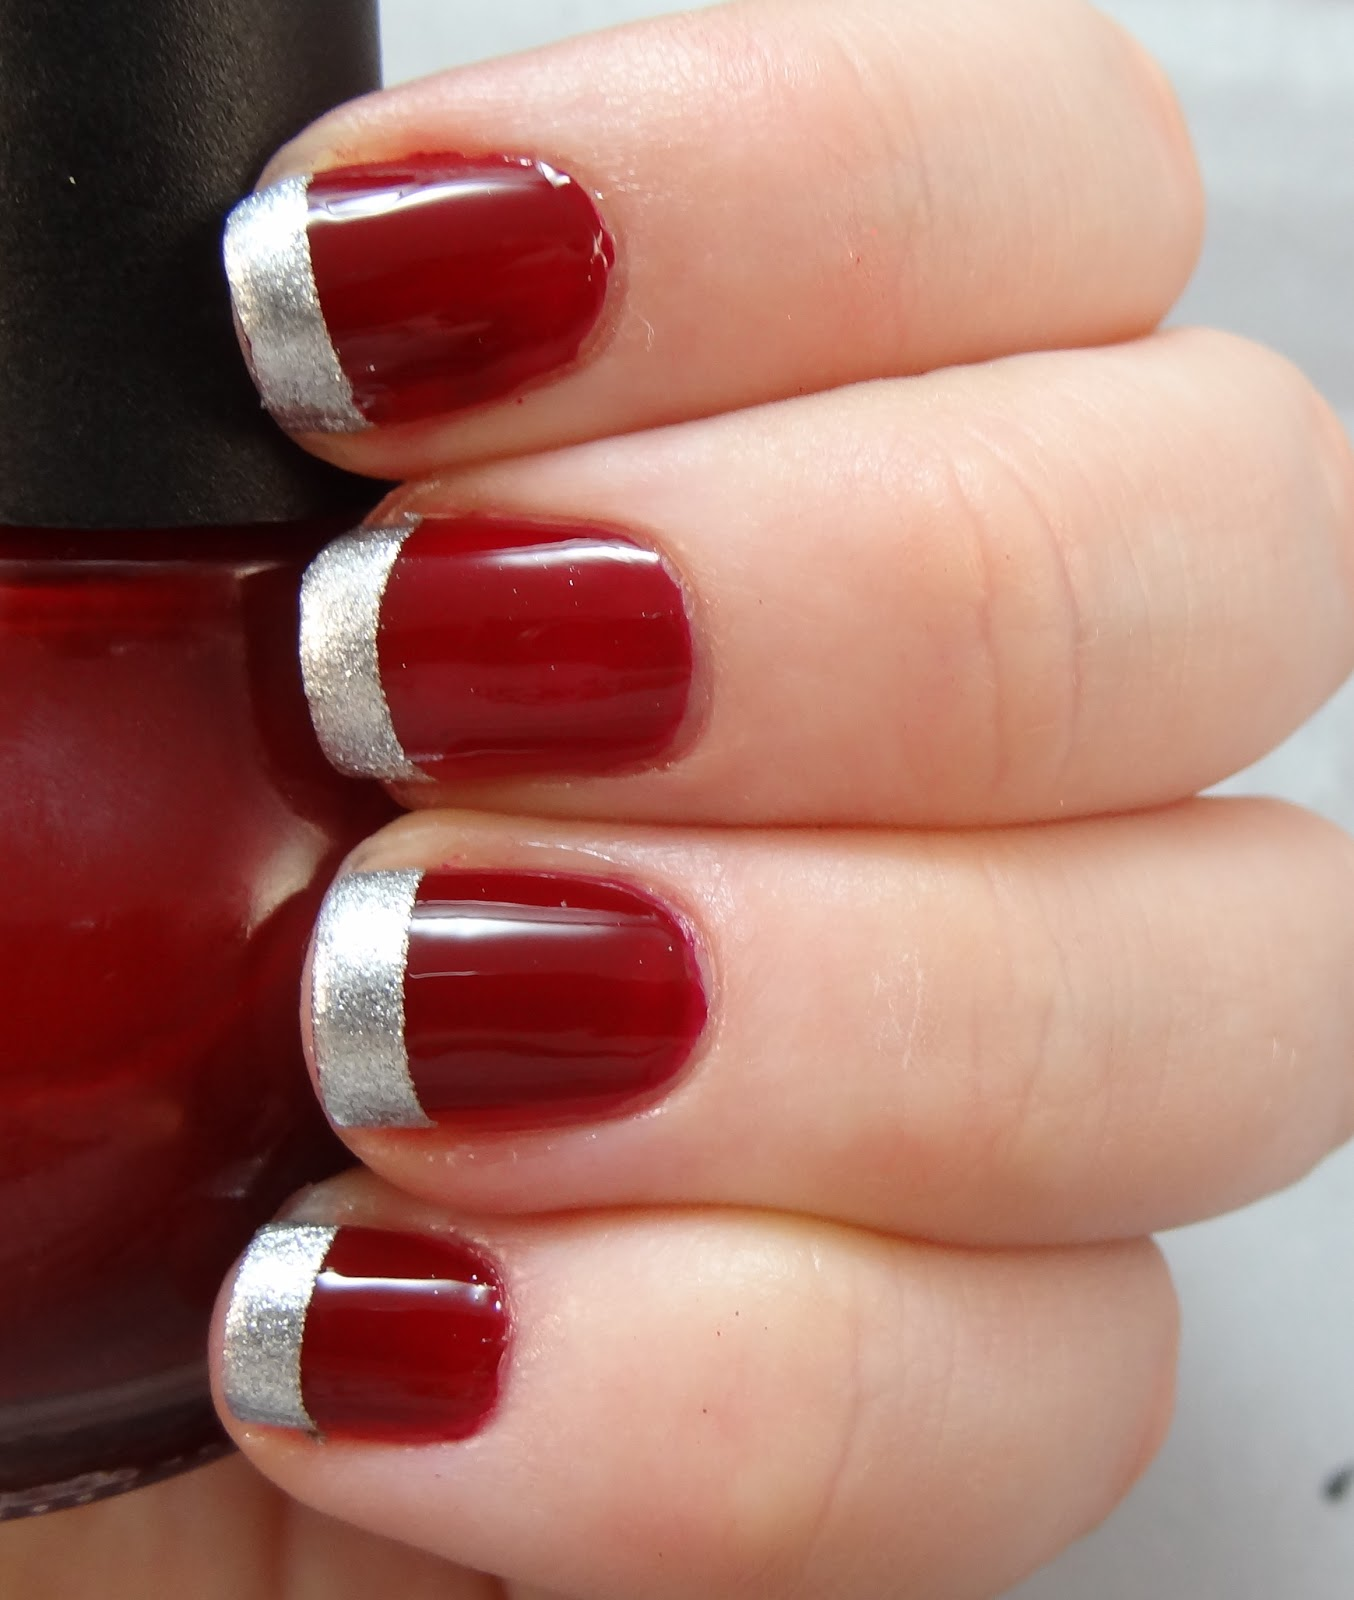 Christmas Nails Not Red: Adventures In LalaLand: Undercover Christmas Nails